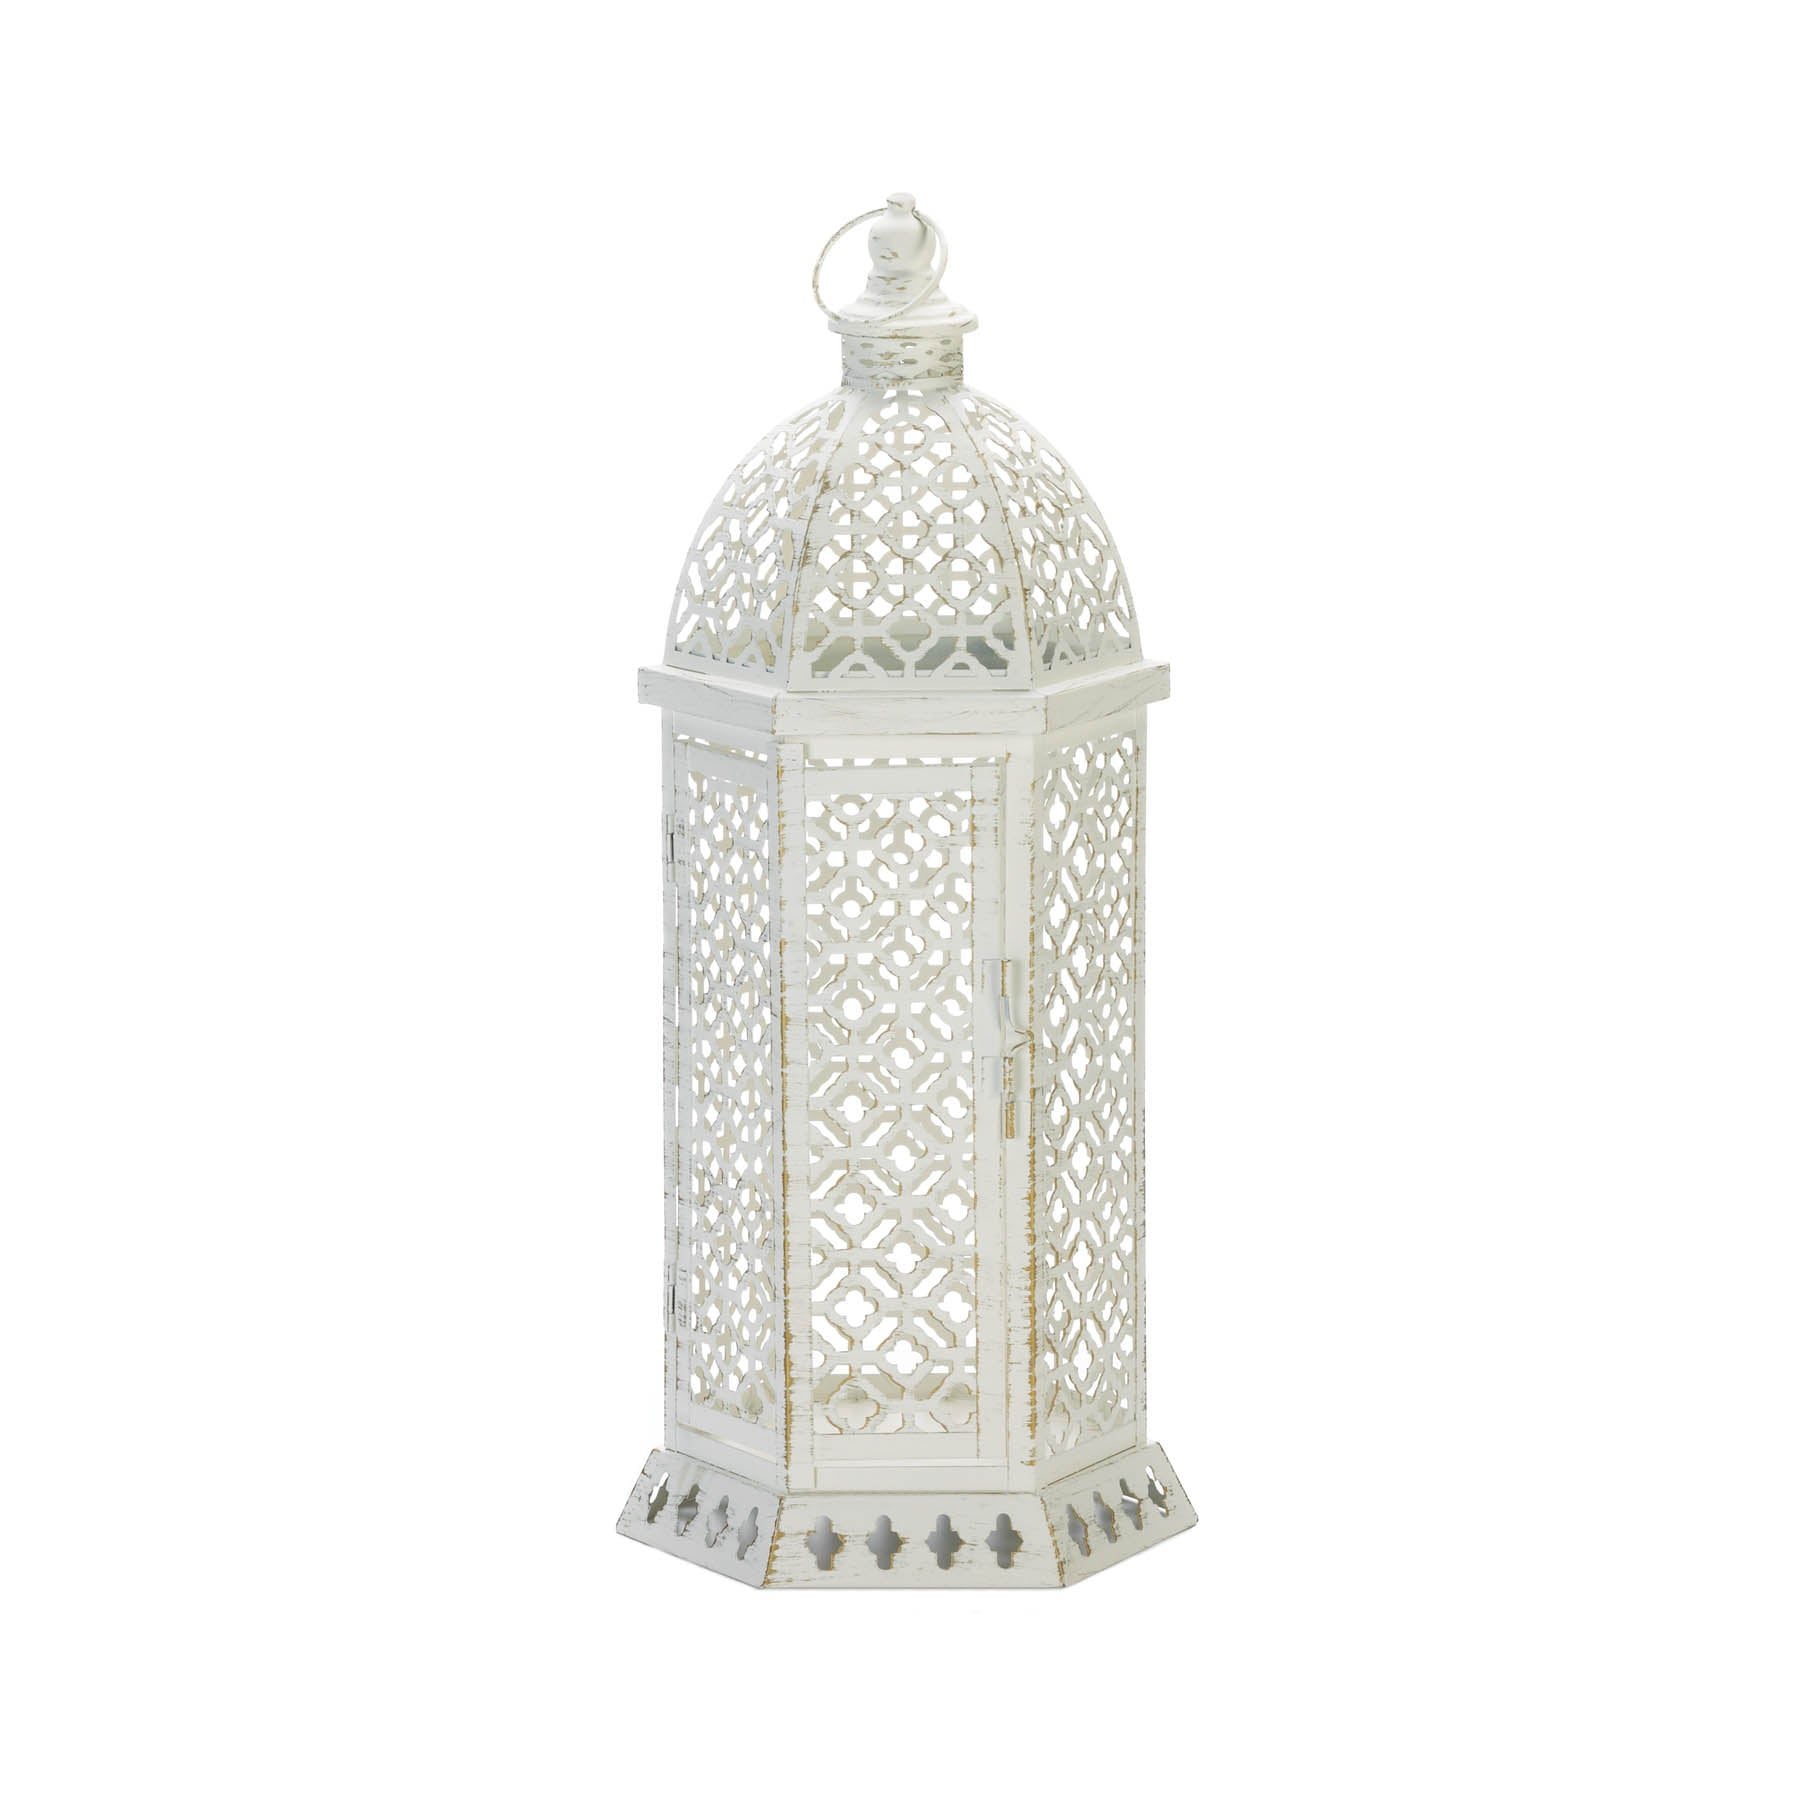 Gallery of Light Large Cutwork Hexagon Lantern - 10018609